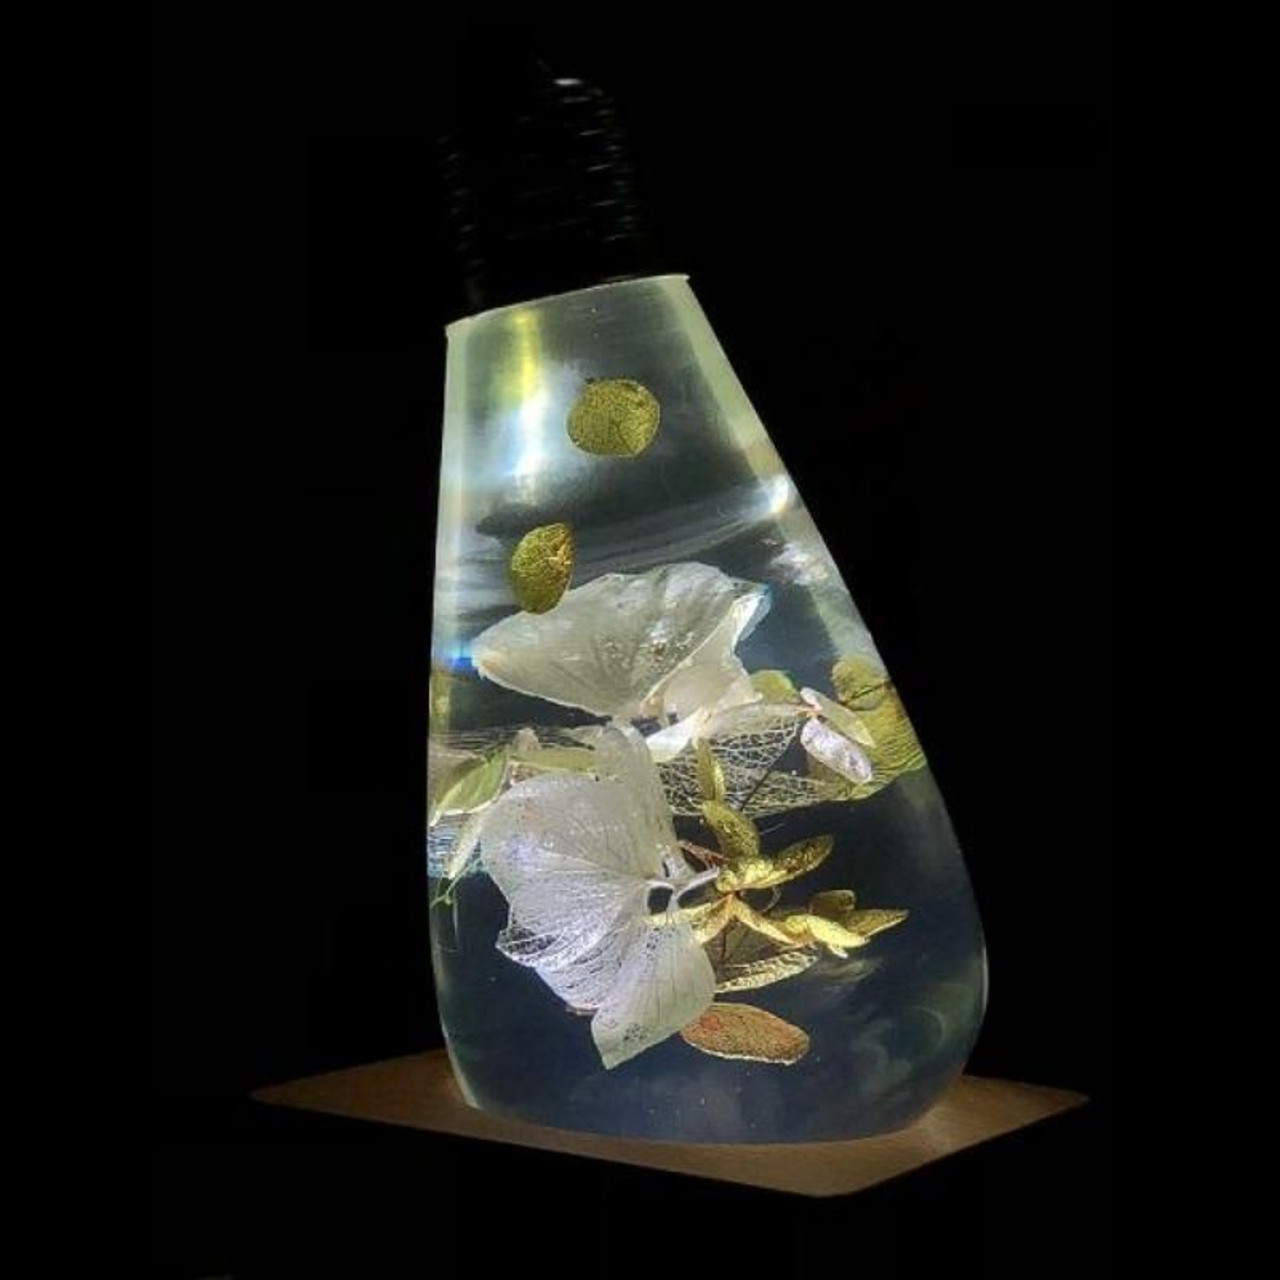 EP Light White Hydrangea Flower Bulb Art Fixture Lamp with Optional Modern or Vintage Base Stand